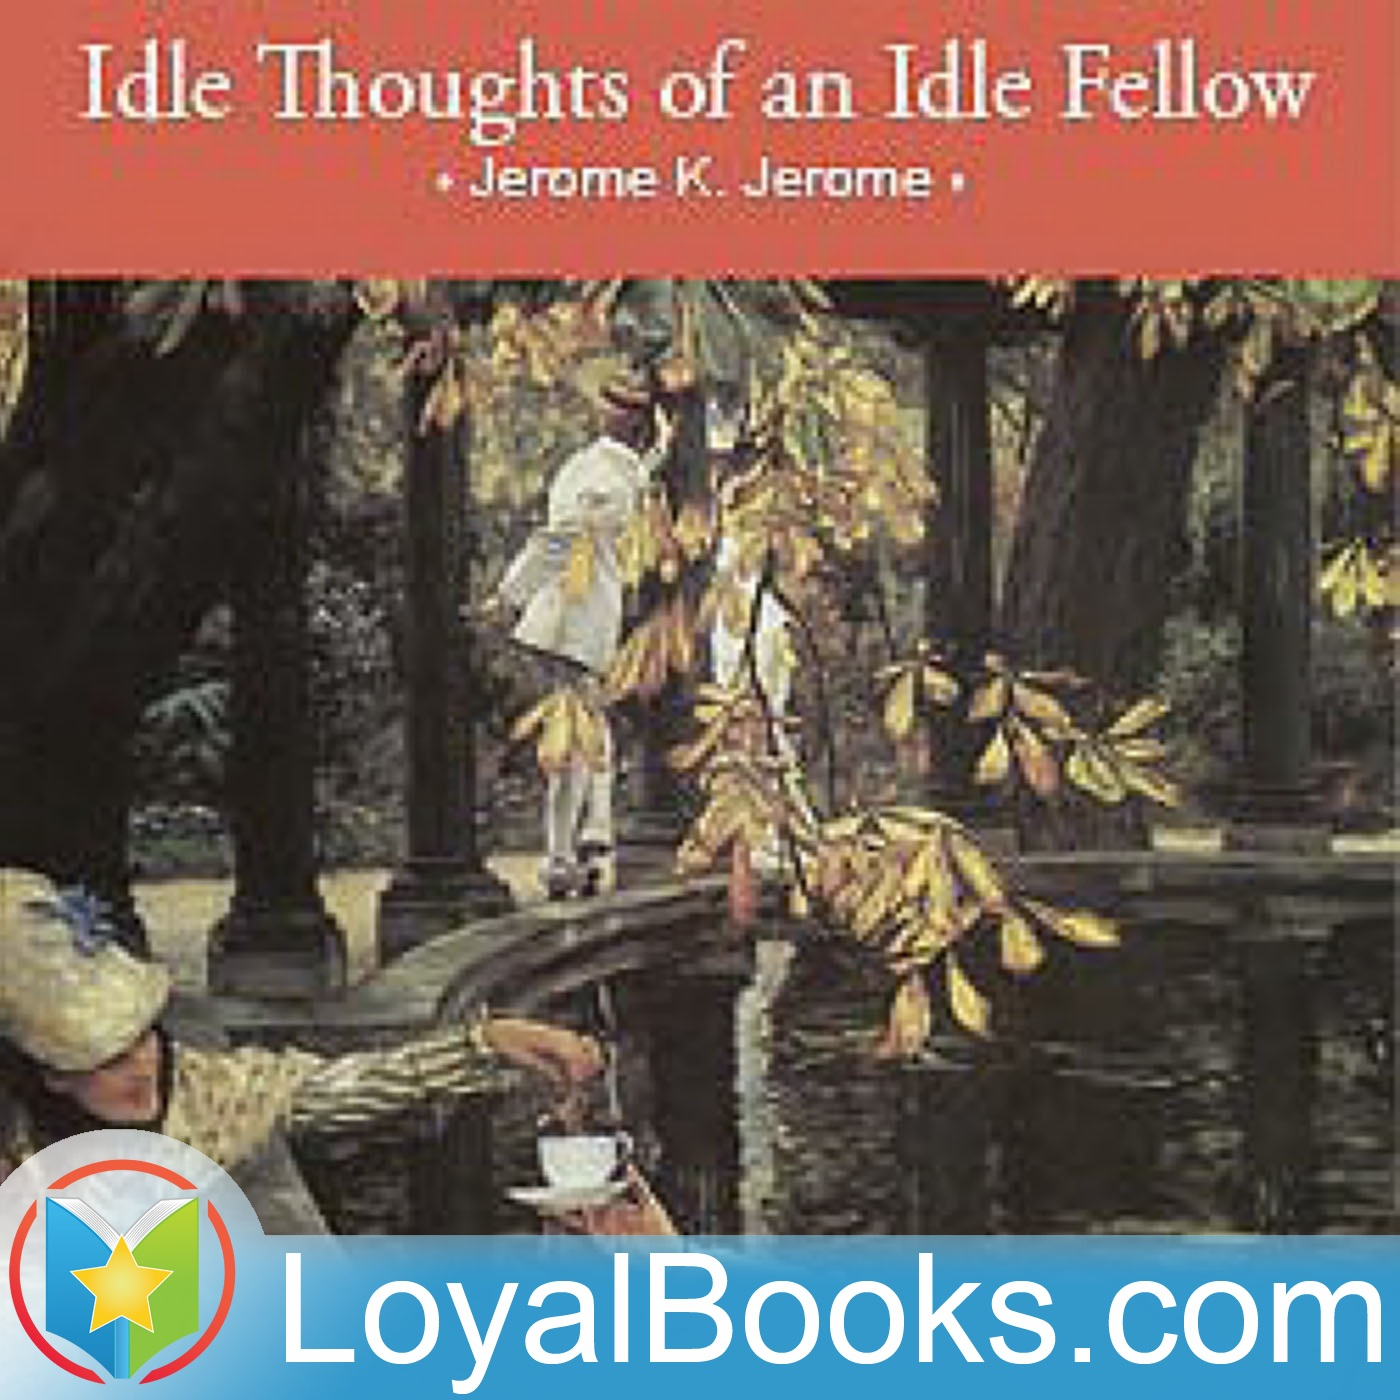 <![CDATA[Idle Thoughts of an Idle Fellow by Jerome K. Jerome]]>